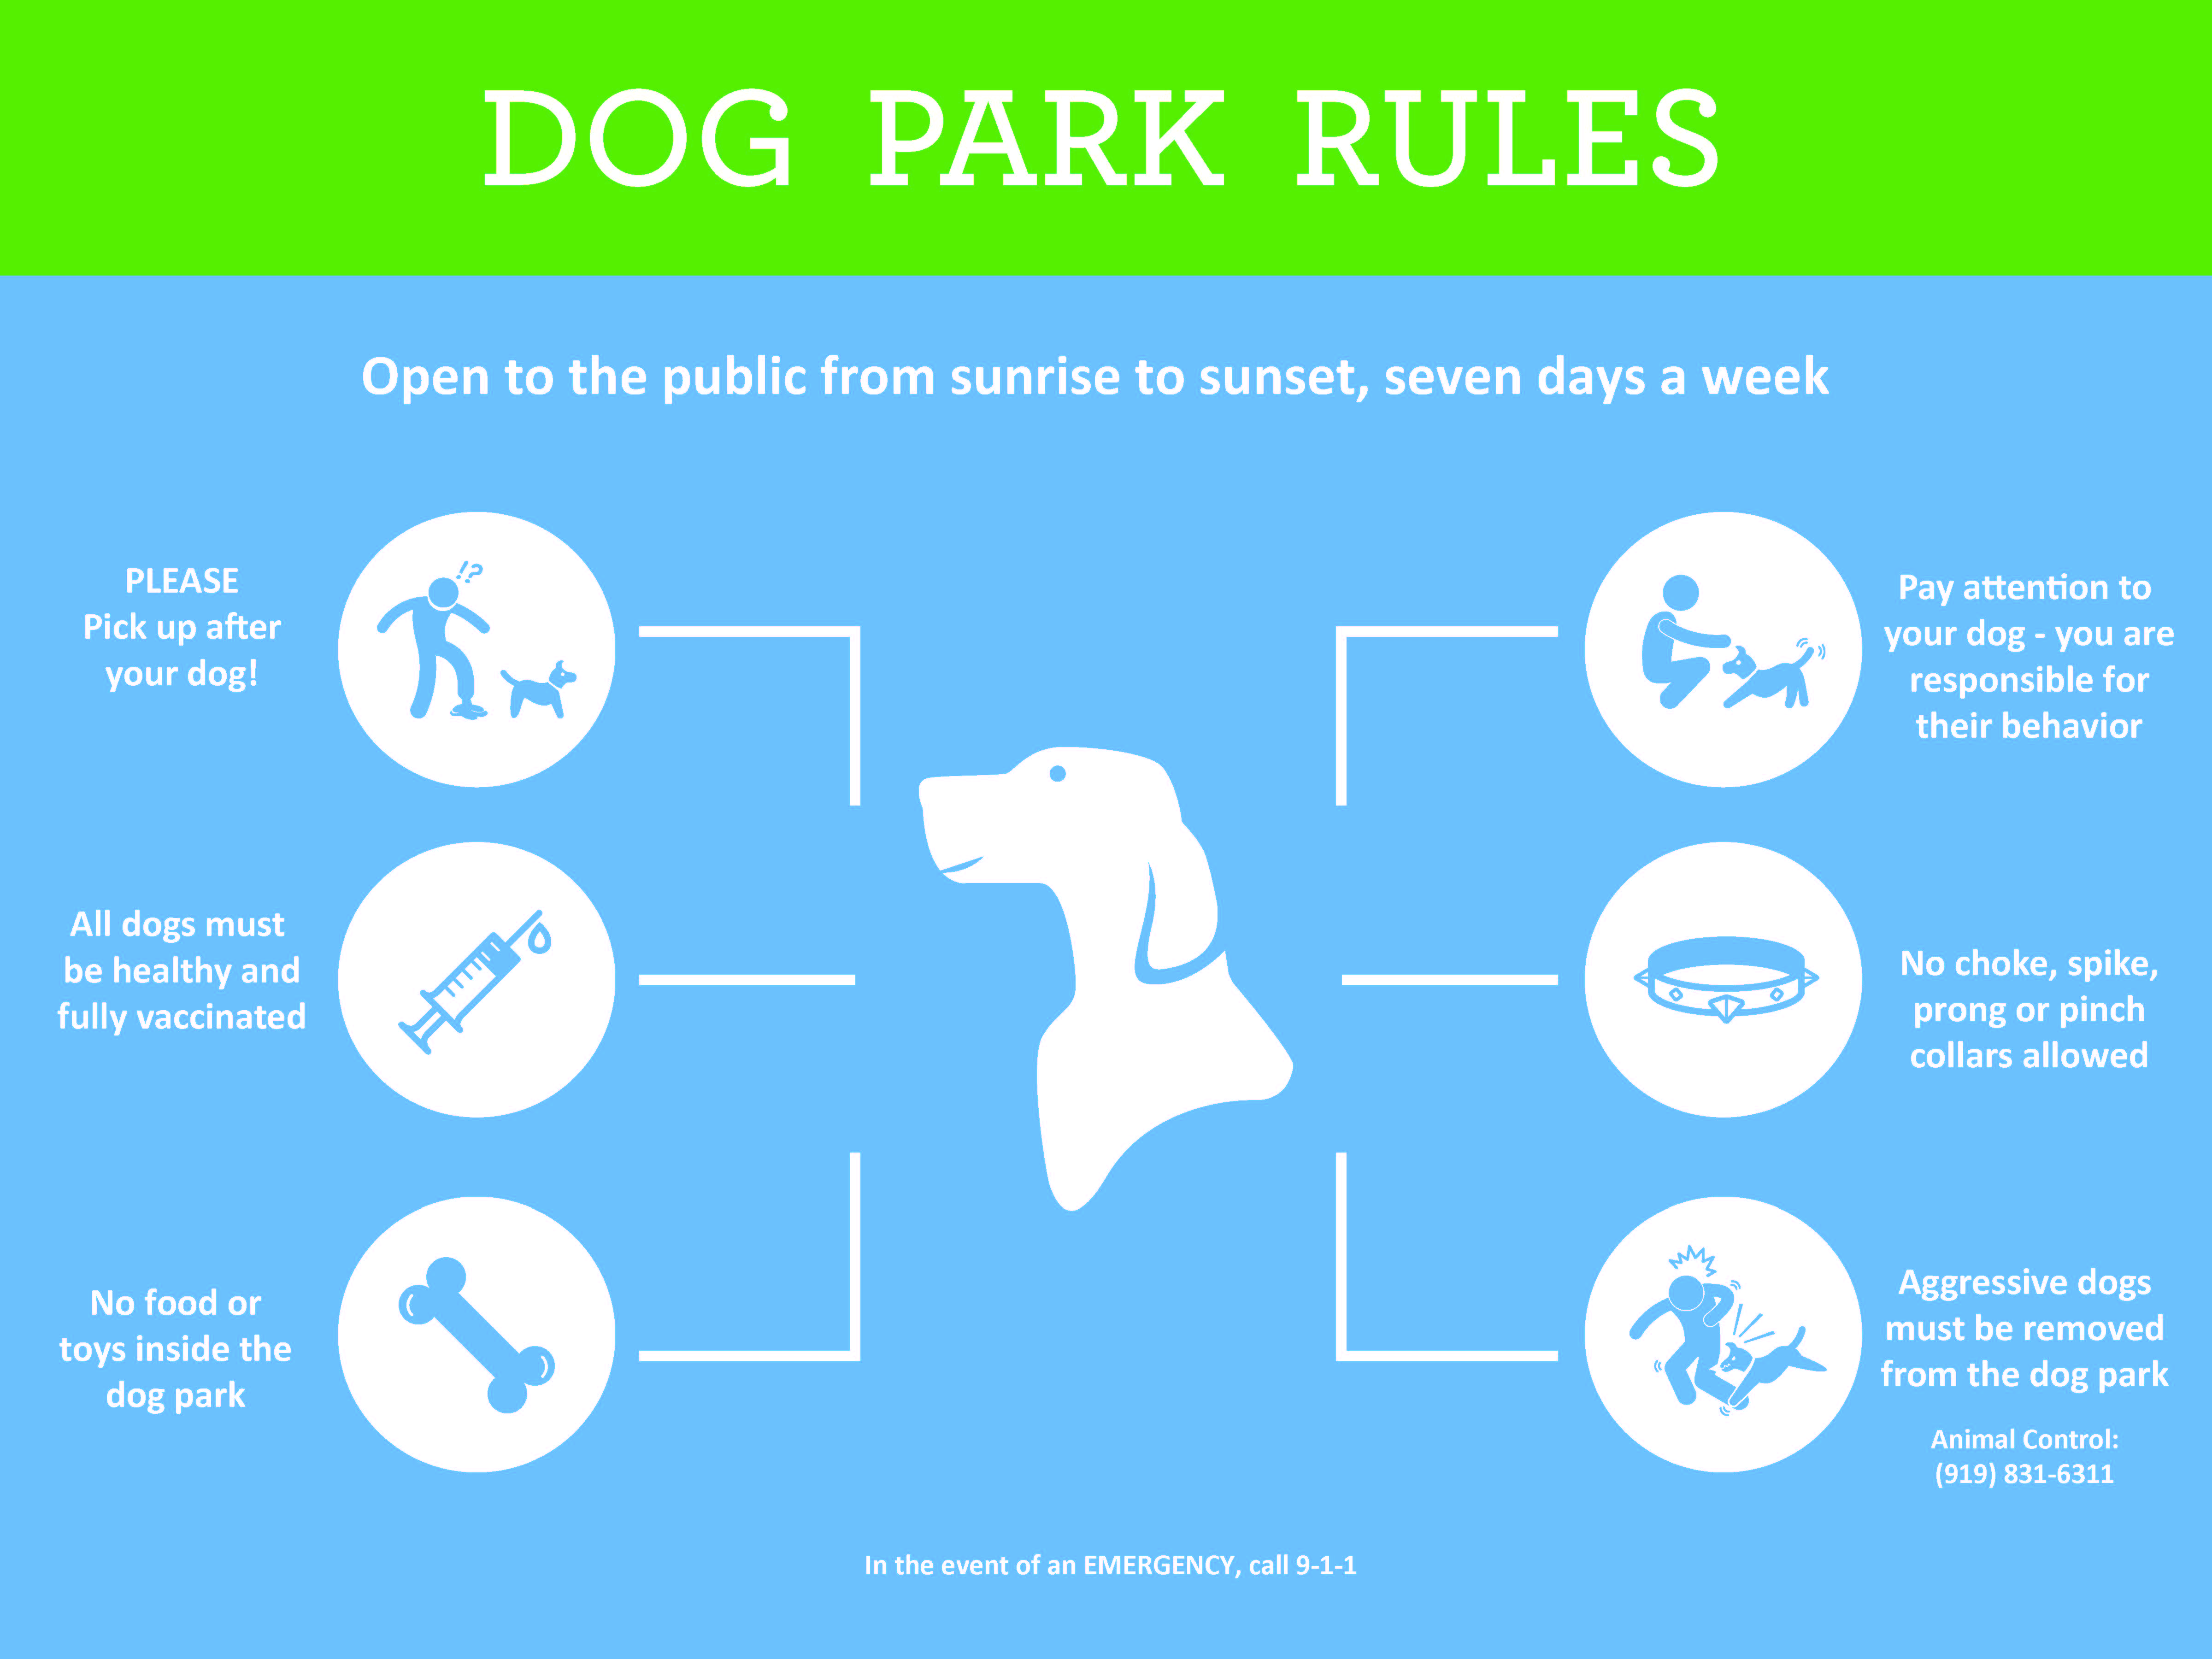 Rules for the Dix Park Dog Park